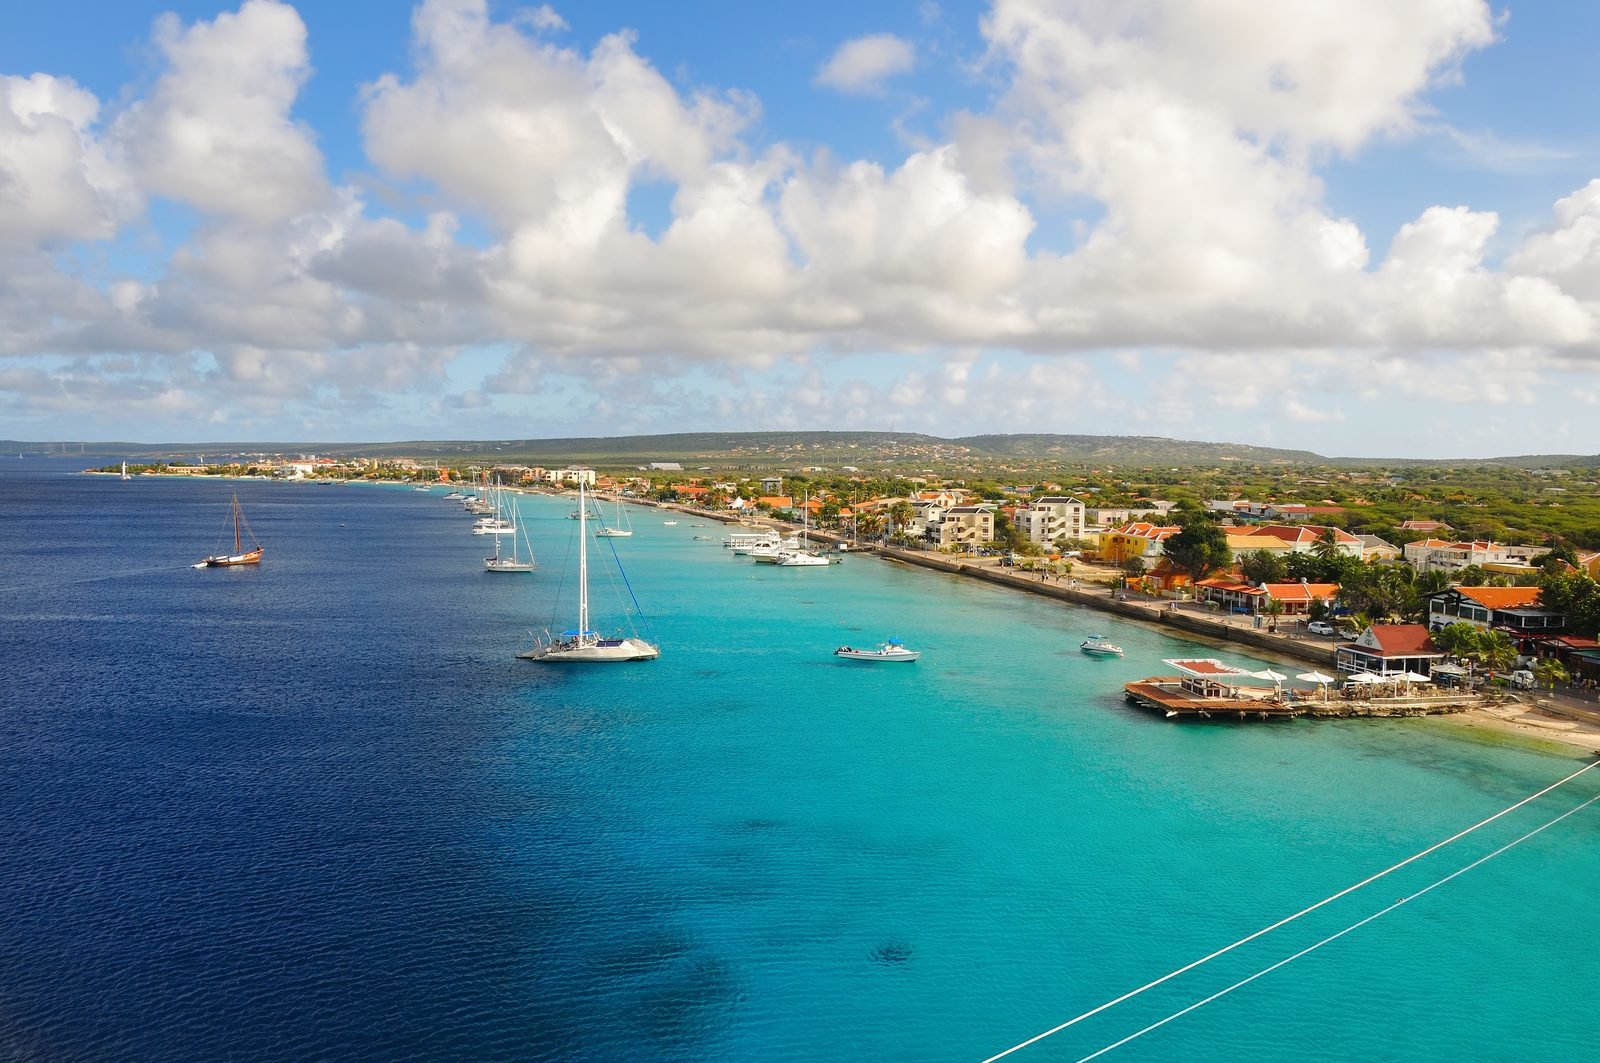 Choose a Bonaire vacation if you want to have a nice and warm vacation at a tropical island. Enjoy the snow-white beaches and pure blue water